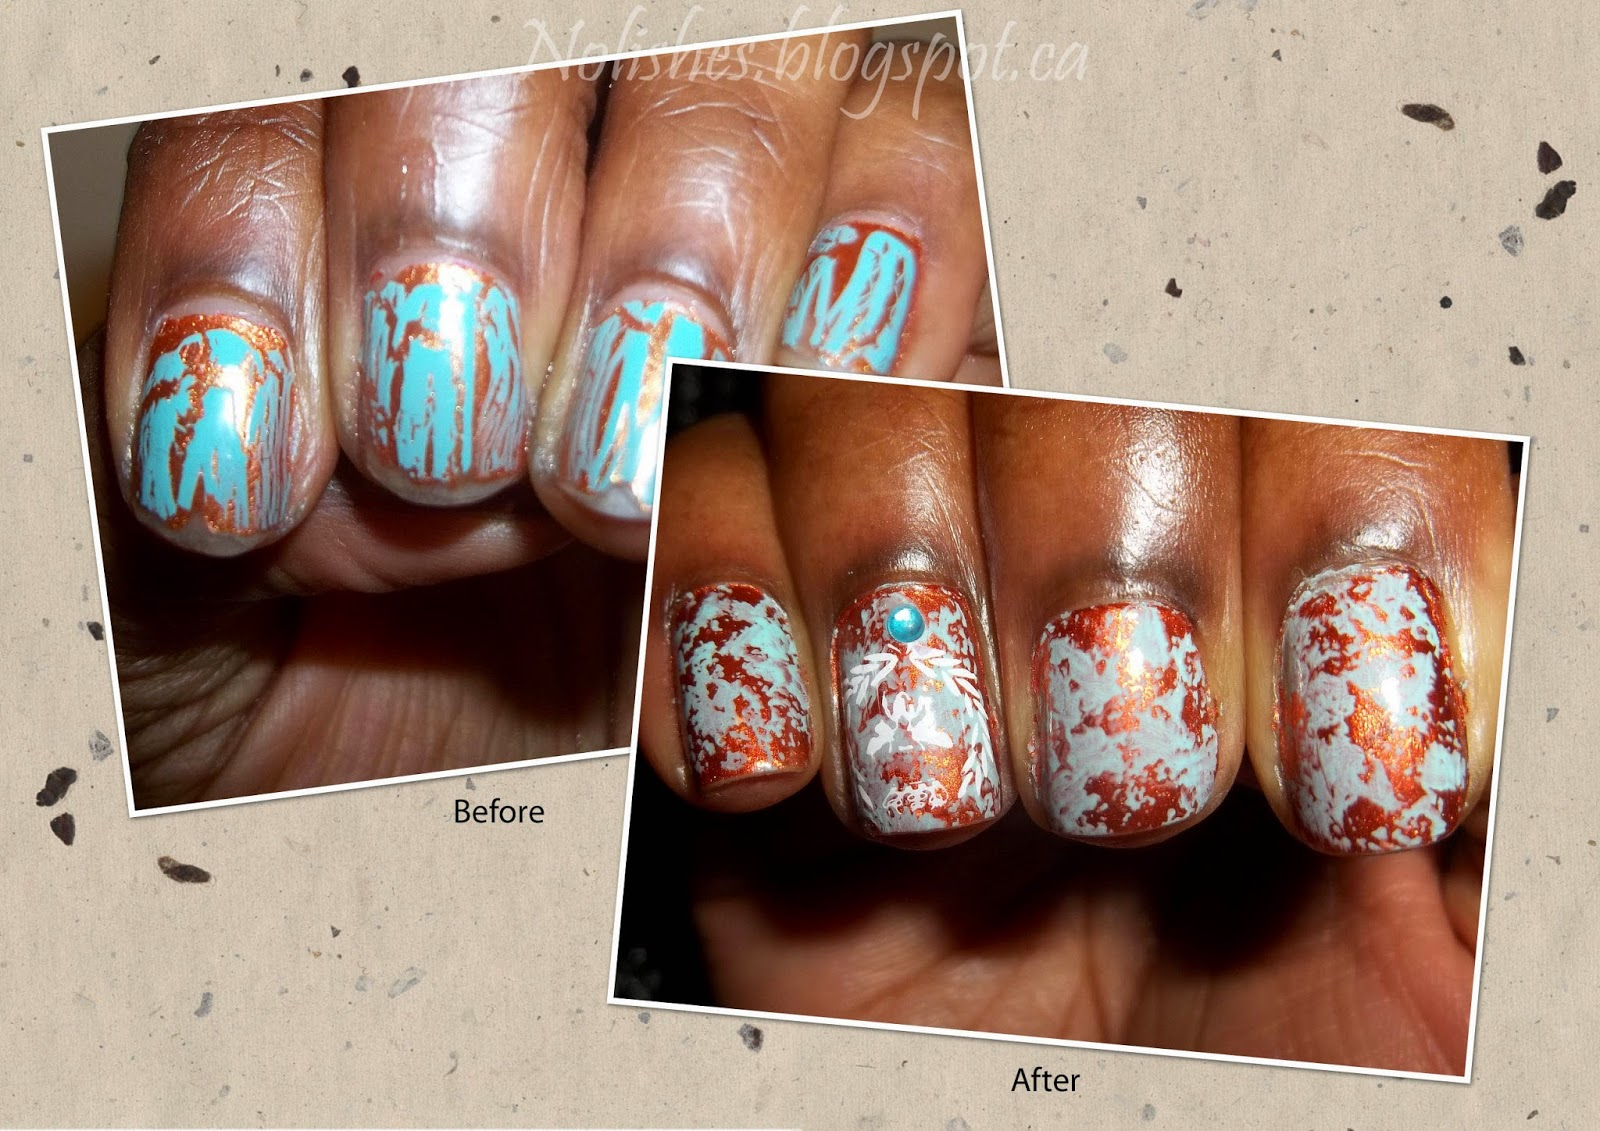 Side by Side Comparison of the Original Verdigris Manicure using China Glaze Crackle Glaze Nail Polish in 'Crushed Candy' (c. 2011), and the newer nail stamping version using Revlon 'Captivate' and Color Club 'Blue Ming' stamped with Bunny Nails Plate HD-C, and Messy Mansion Plate MM18